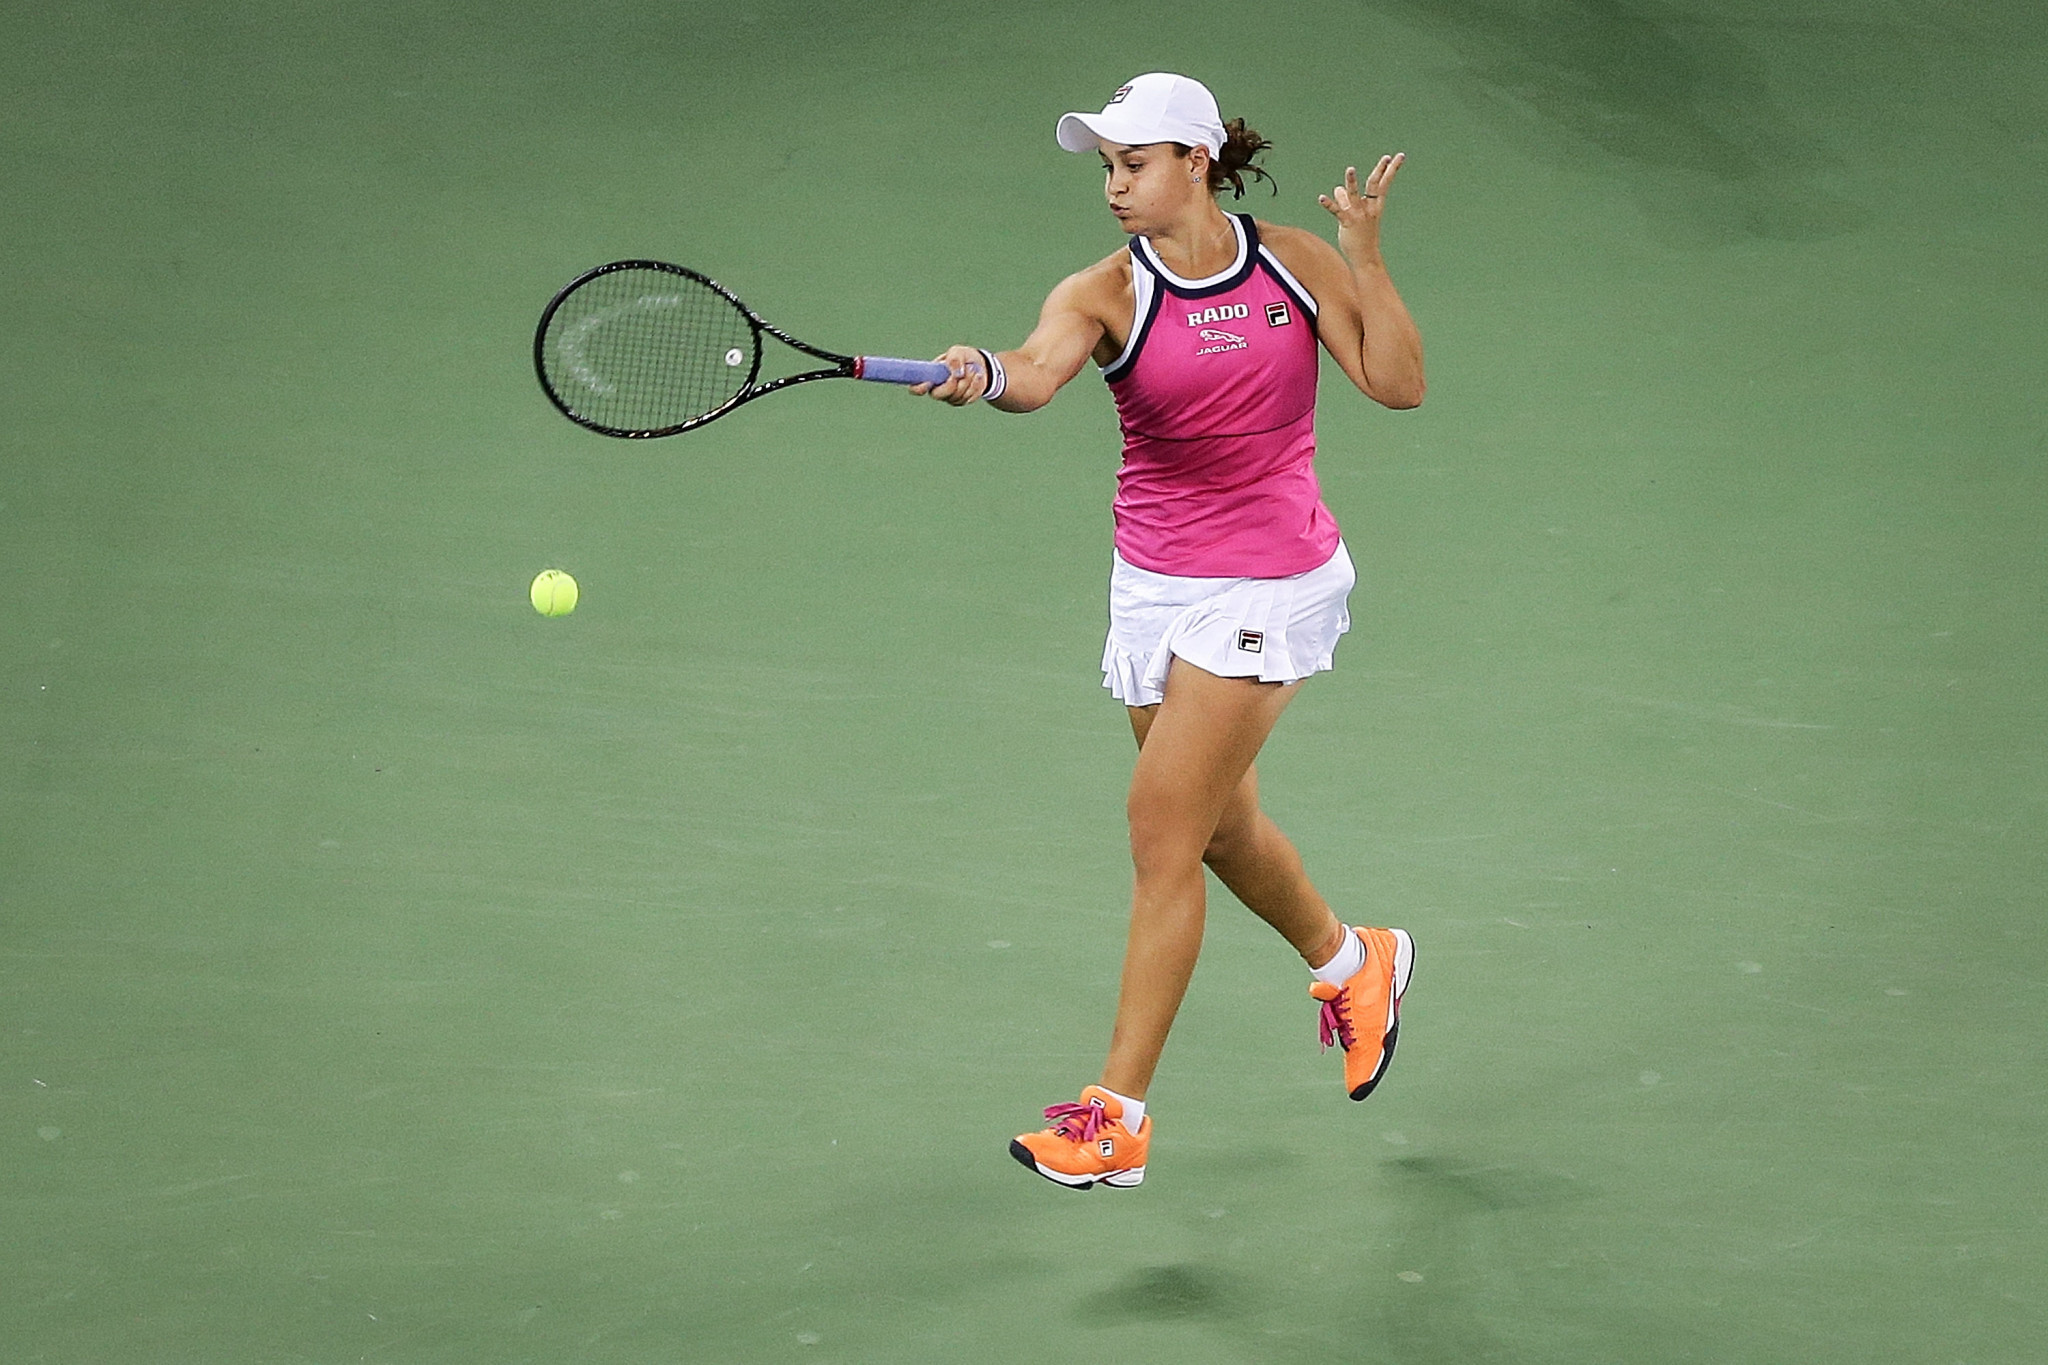 Barty, Andreescu and Sabalenka among favourites at China Open